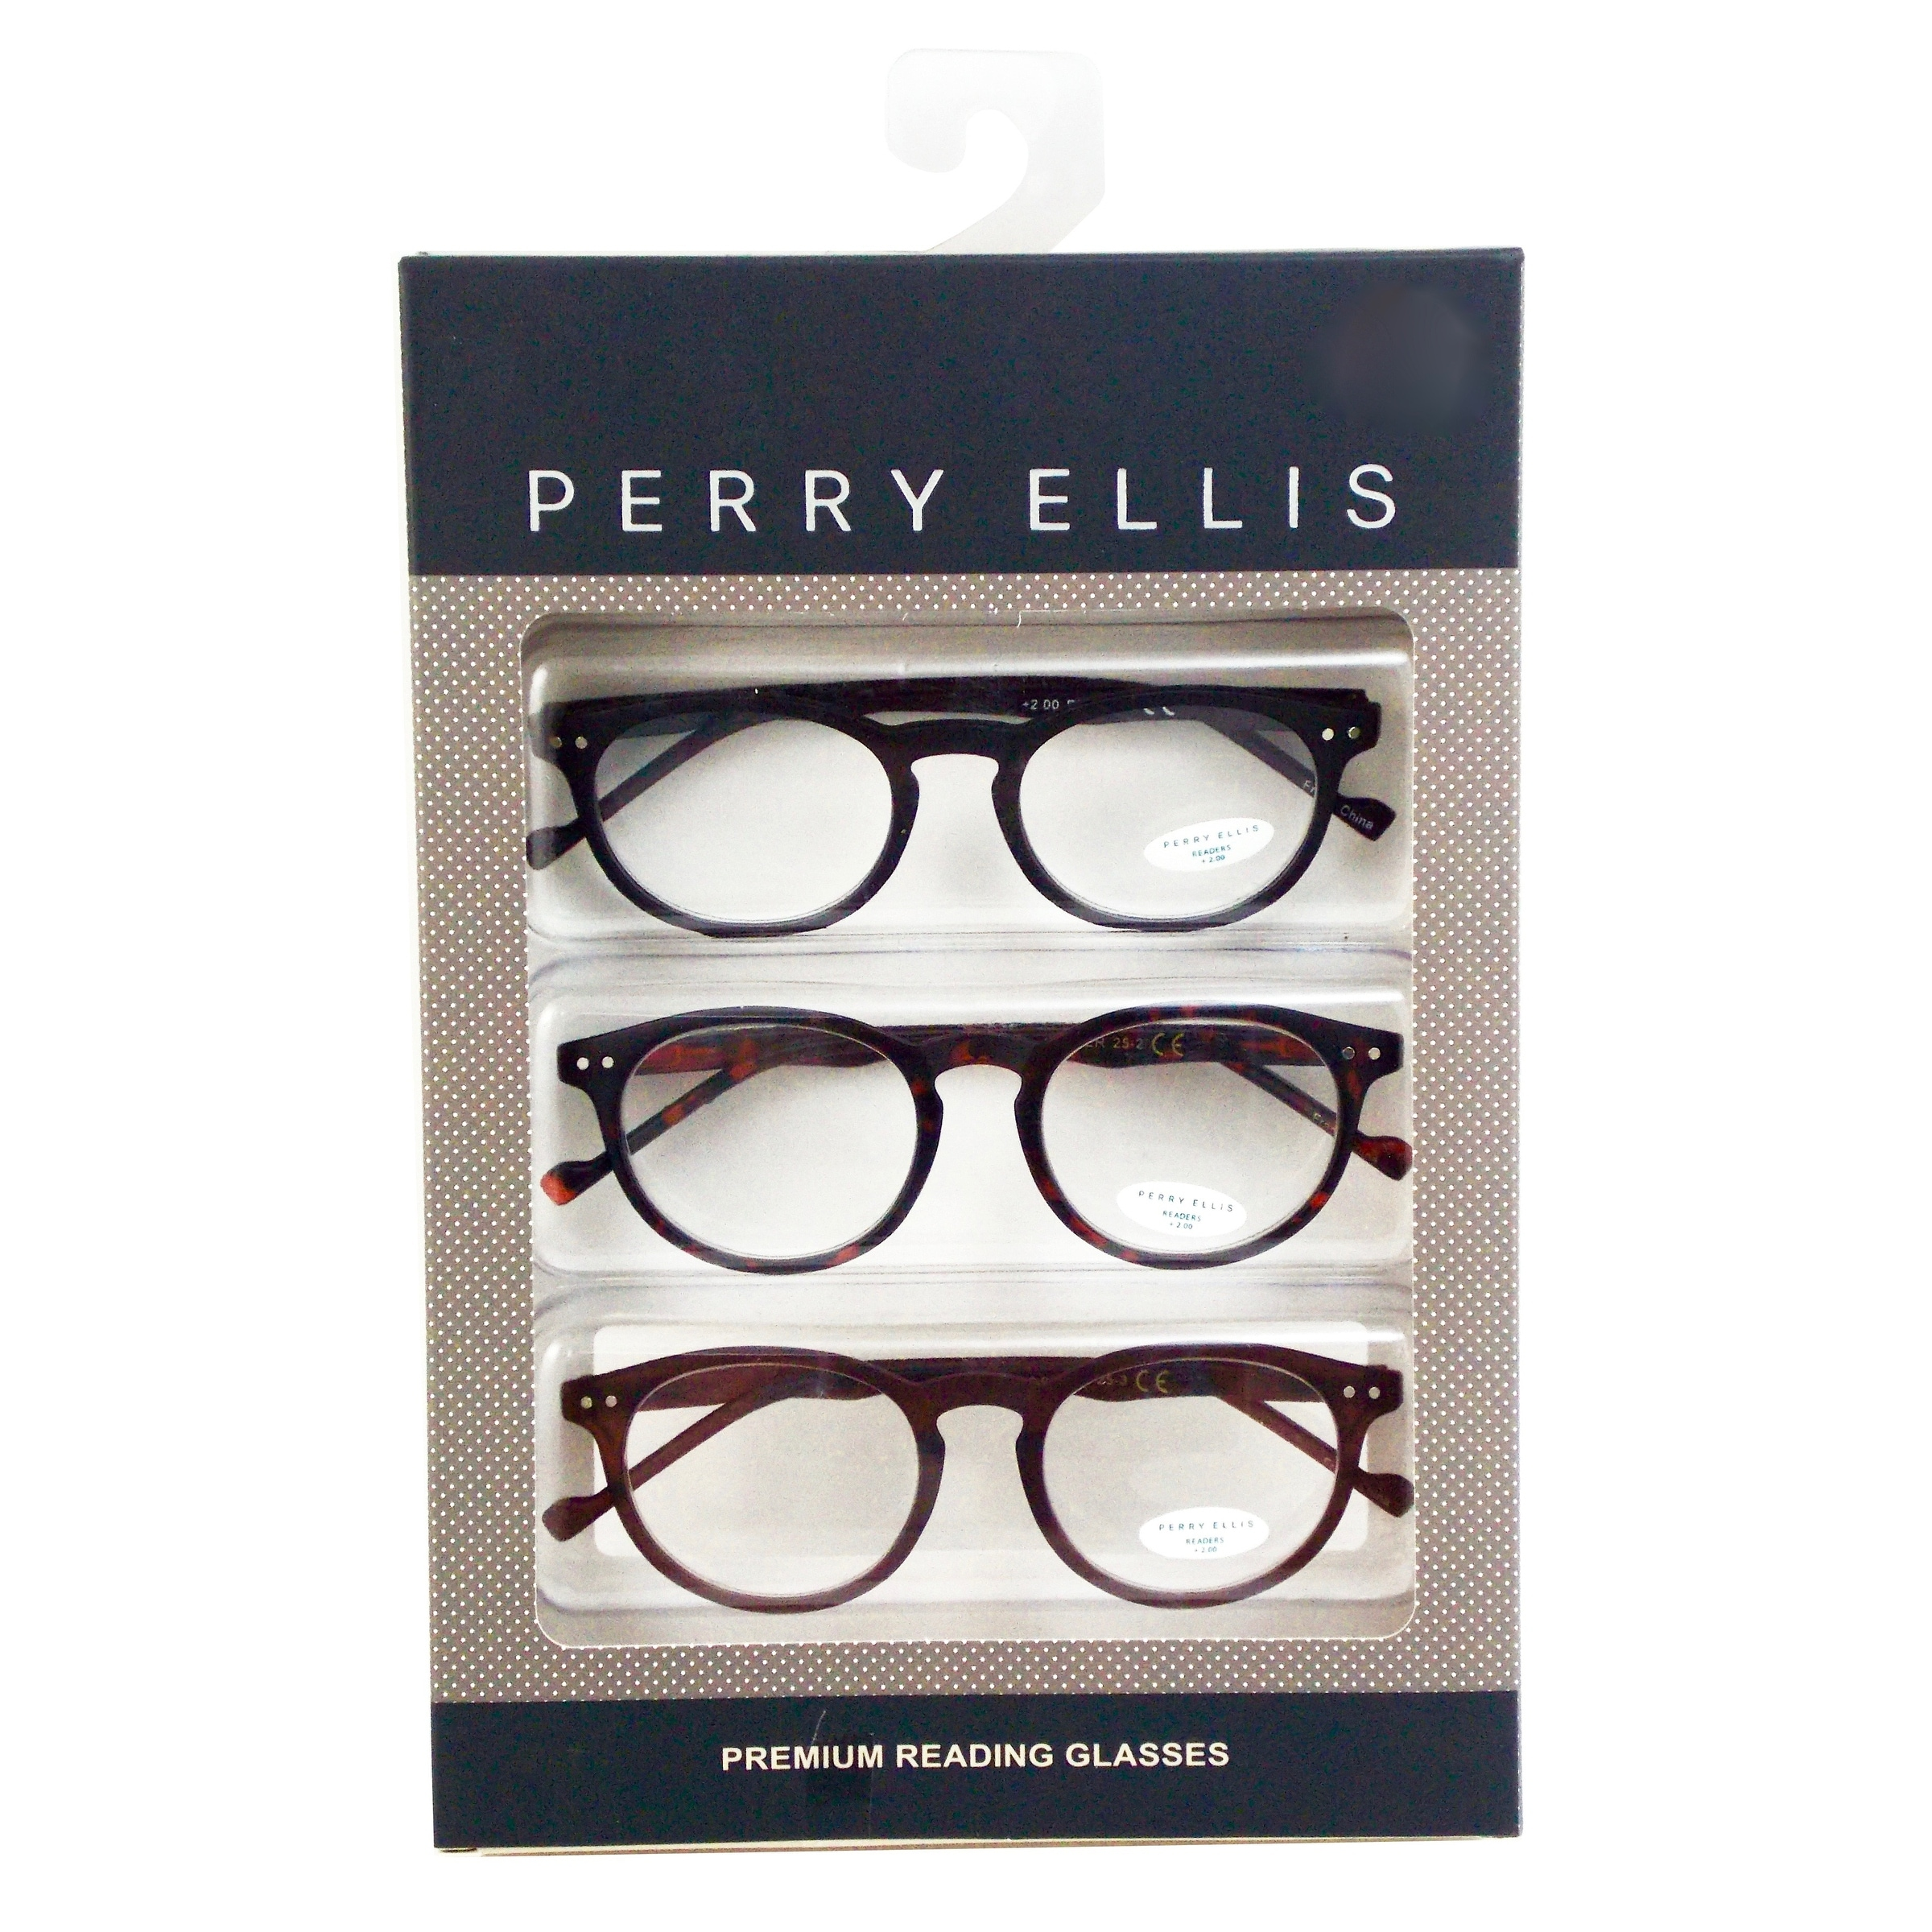 d074bc3bf17 Shop Perry Ellis Mens 3 Multi Pack Metal Reading Glasses +1.5 Blk Trt Brn  PEBX25